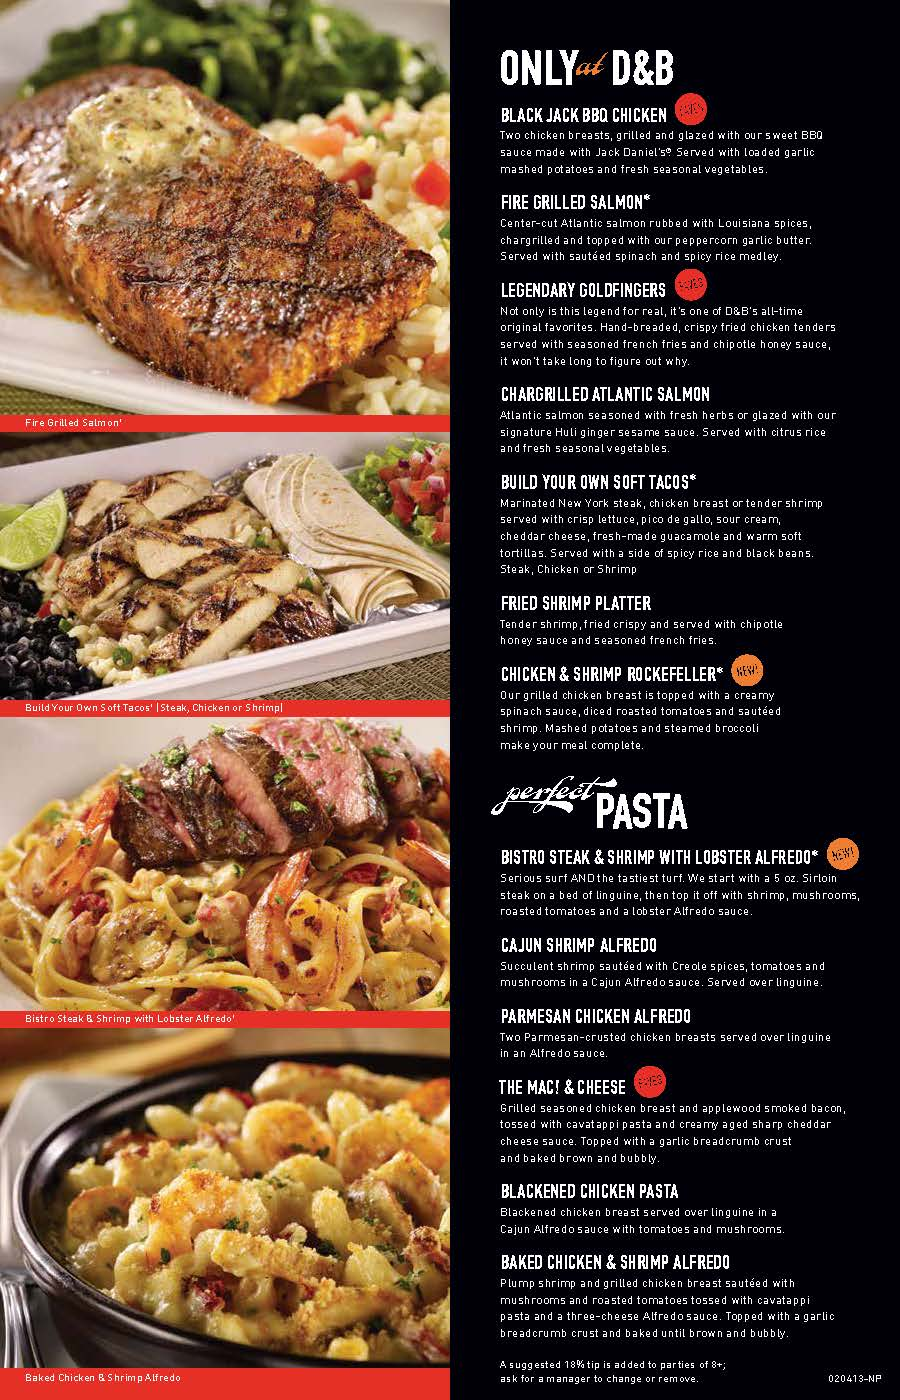 Dave and Busters Menu with Prices. Updated prices! Yes, here it is, the entire Dave & Buster menu with prices for you to get your teeth into. The prices are accurate, as far as we now, though small variations in prices may occur from location to location.